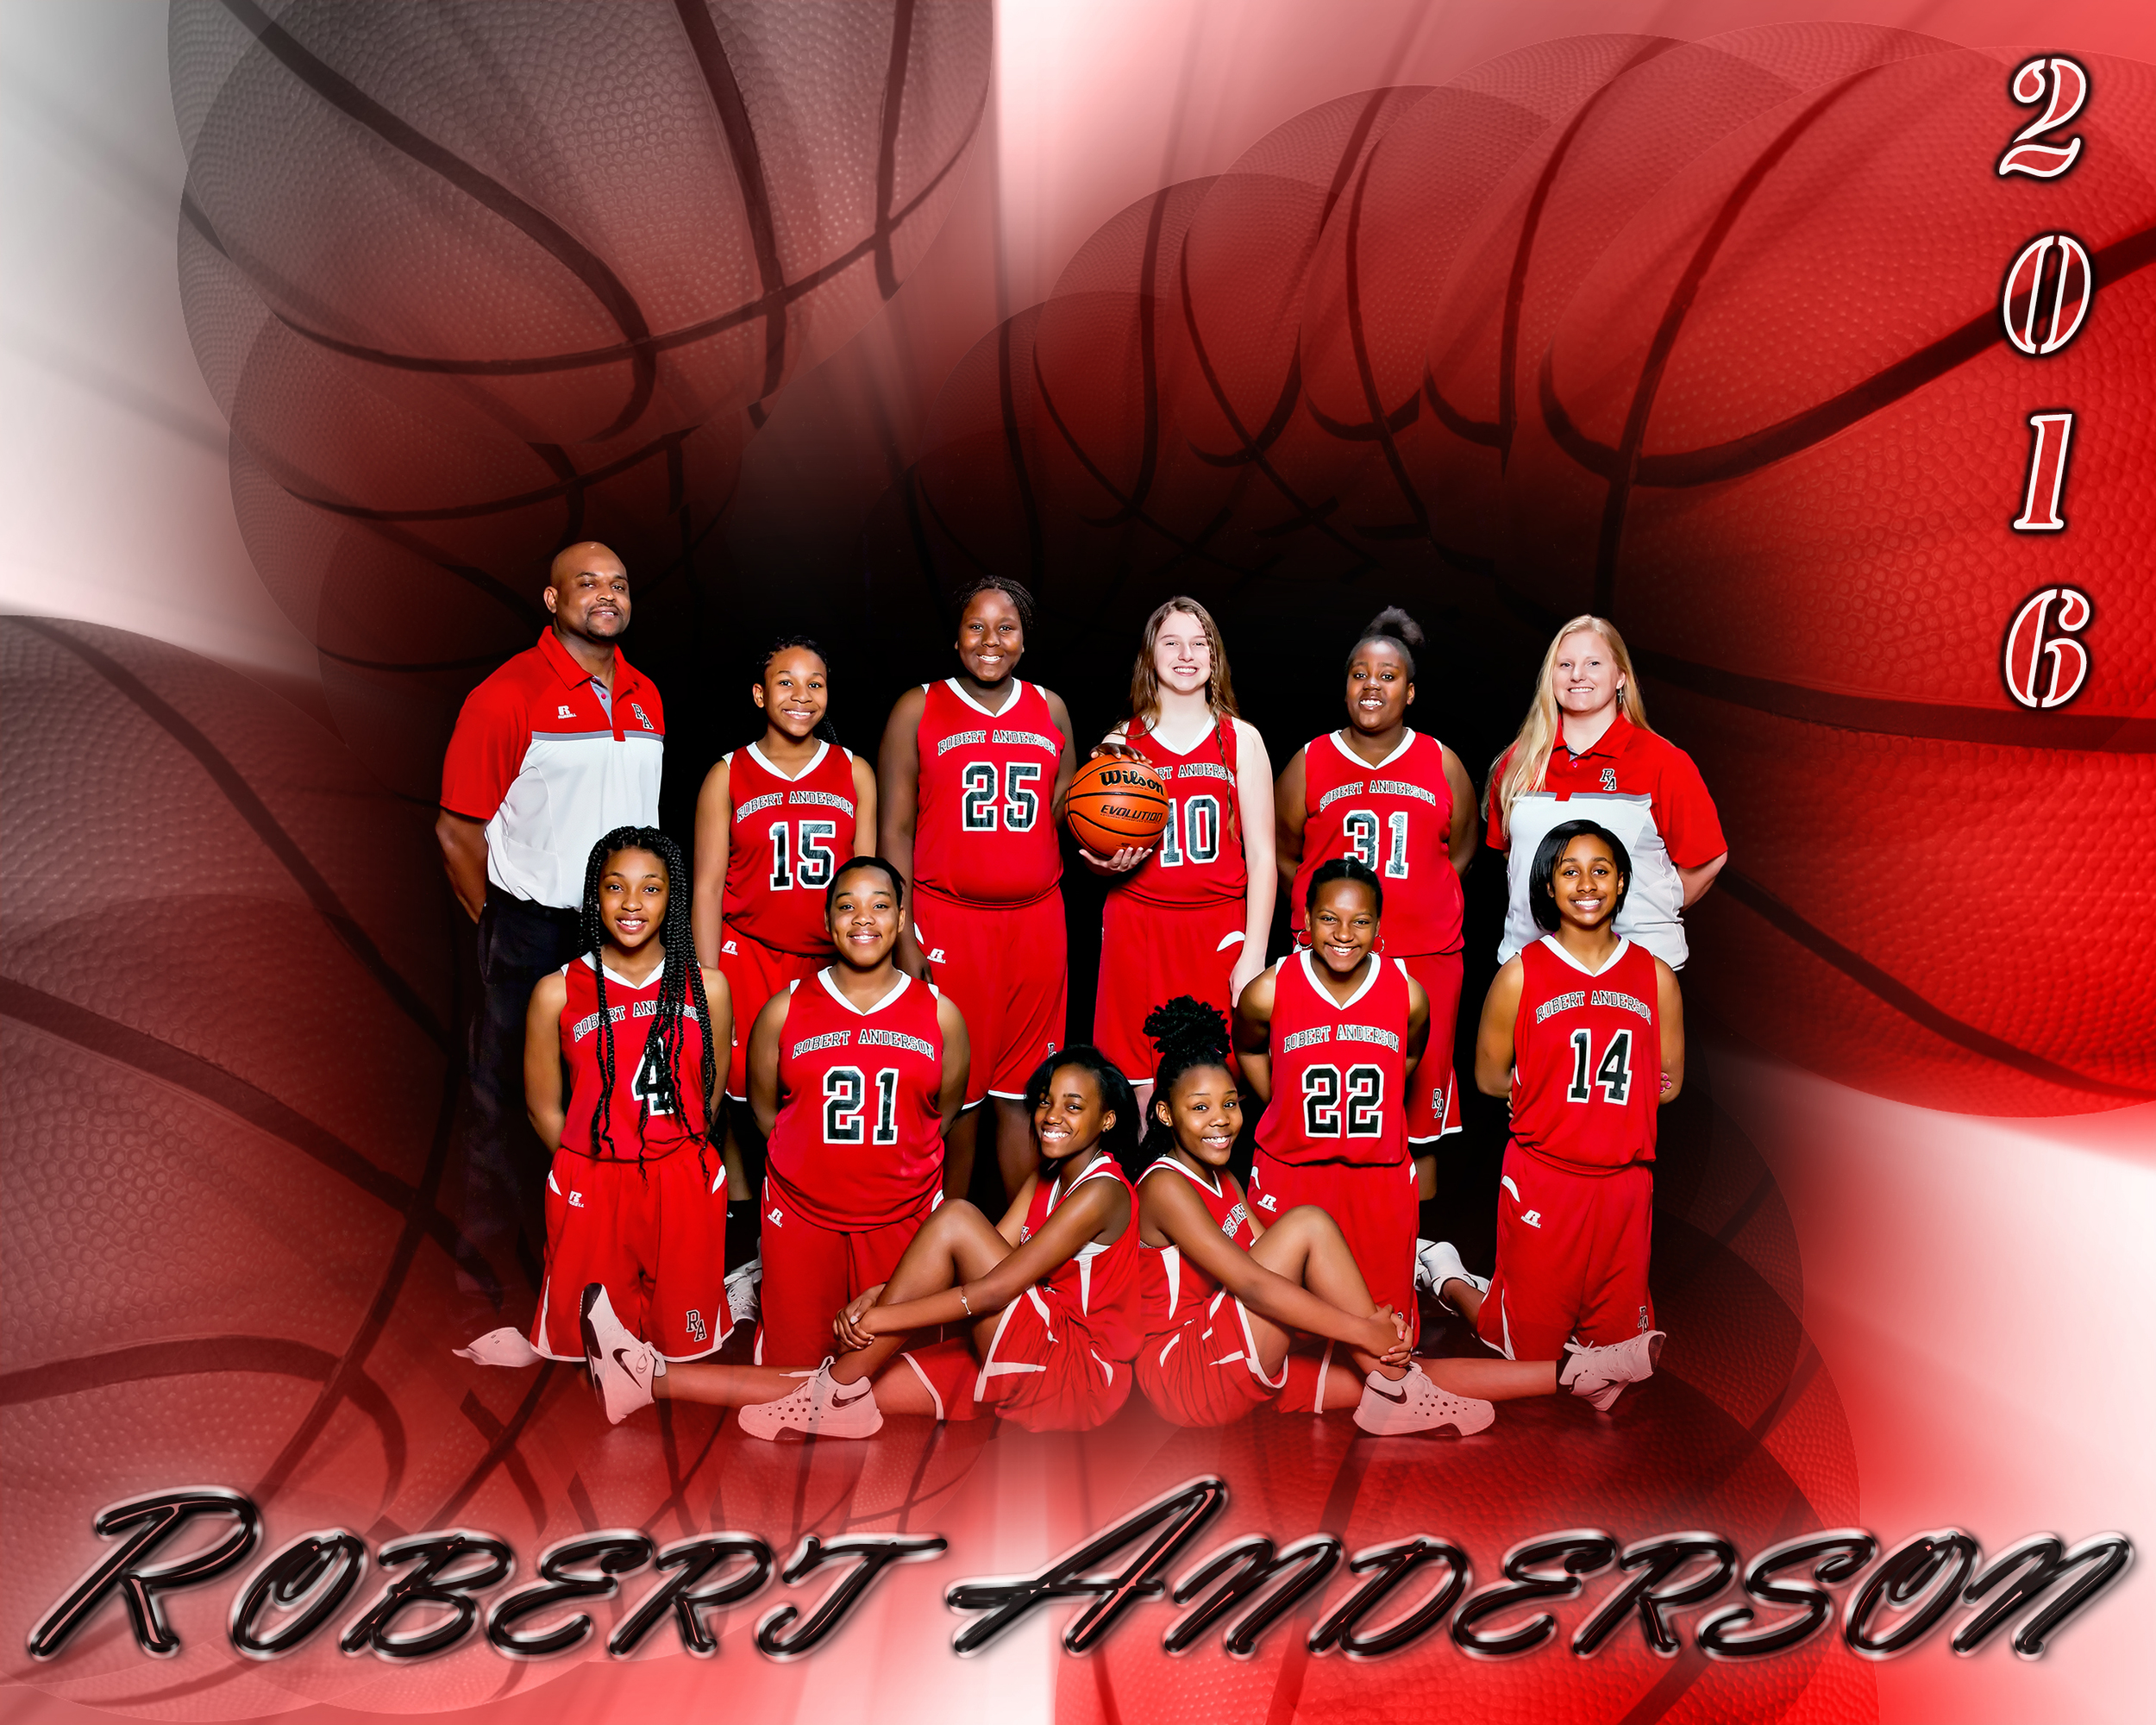 2016 rams girls team.jpg